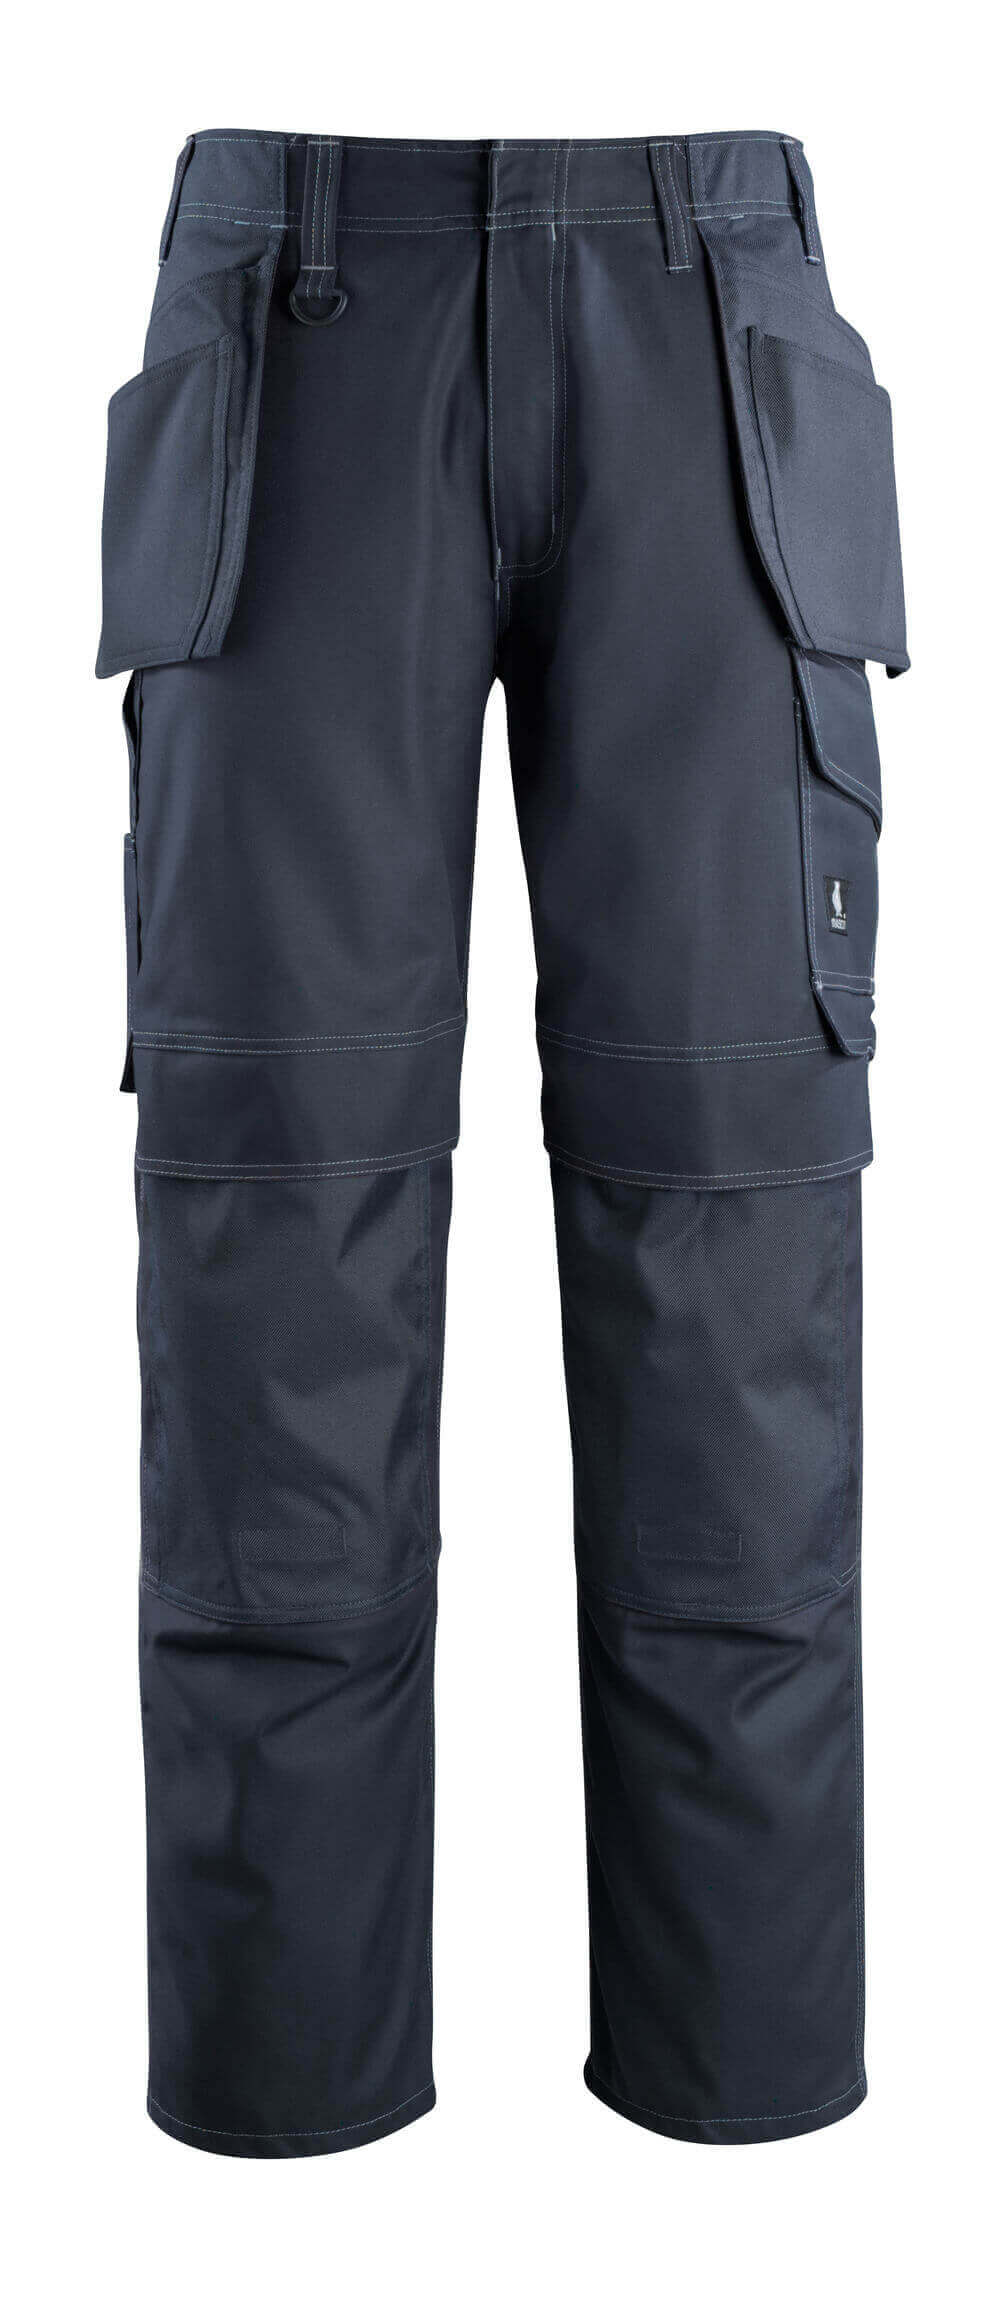 10131-154-010 Trousers with holster pockets - dark navy